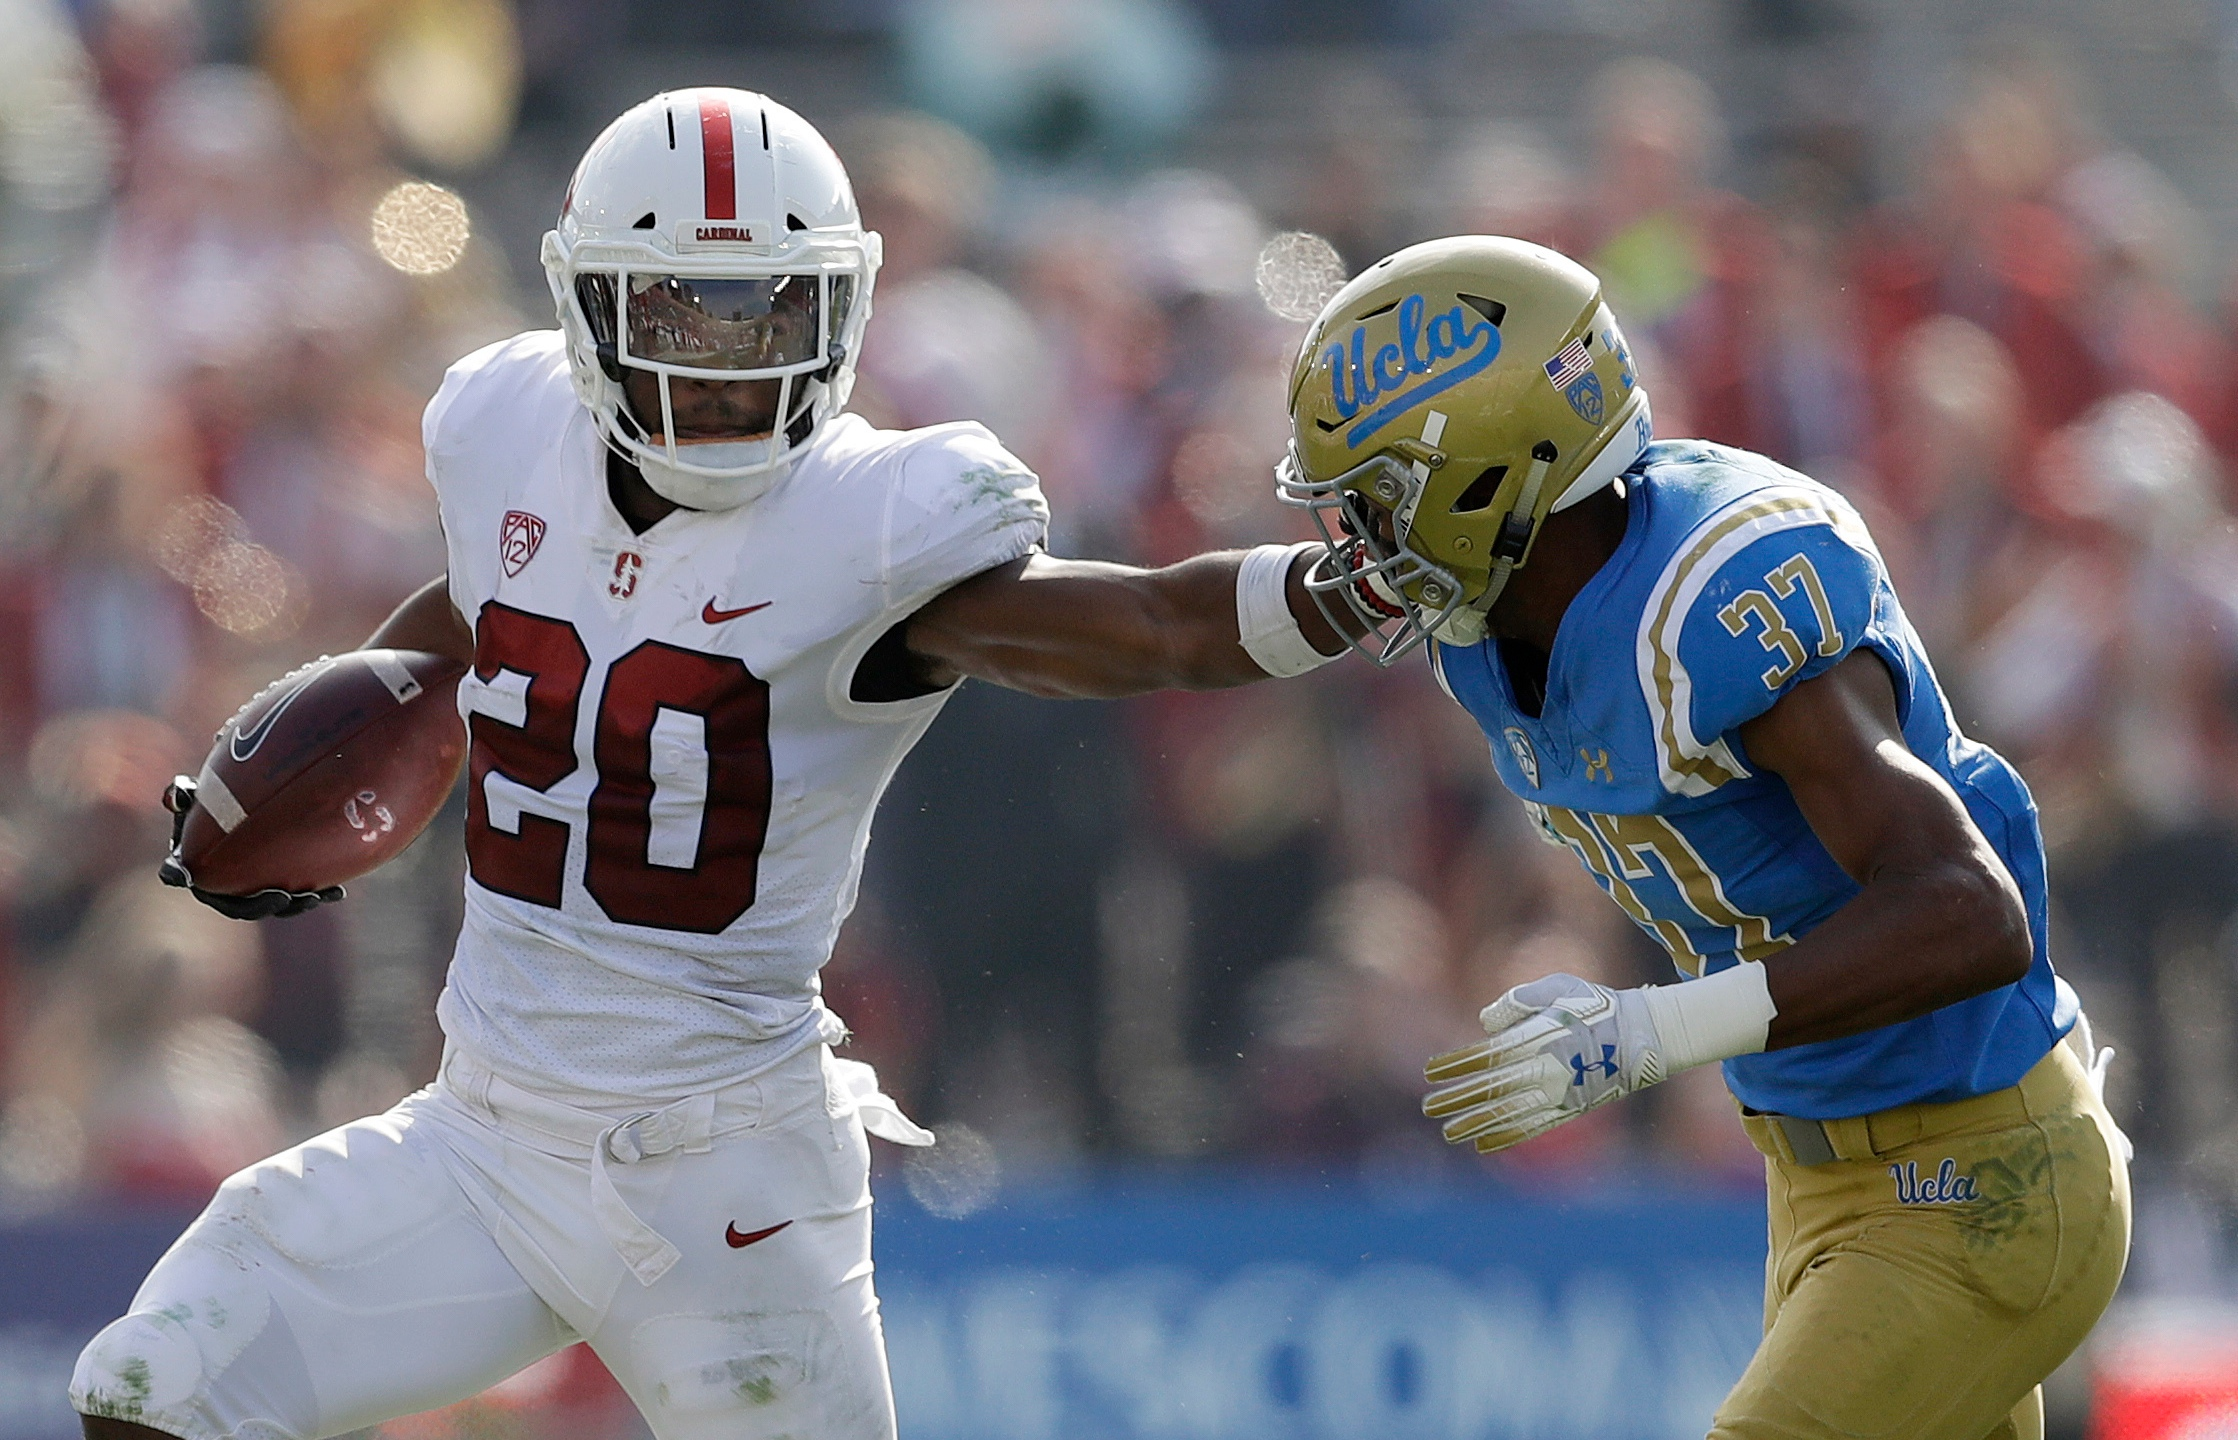 Stanford UCLA Football_1554154271864